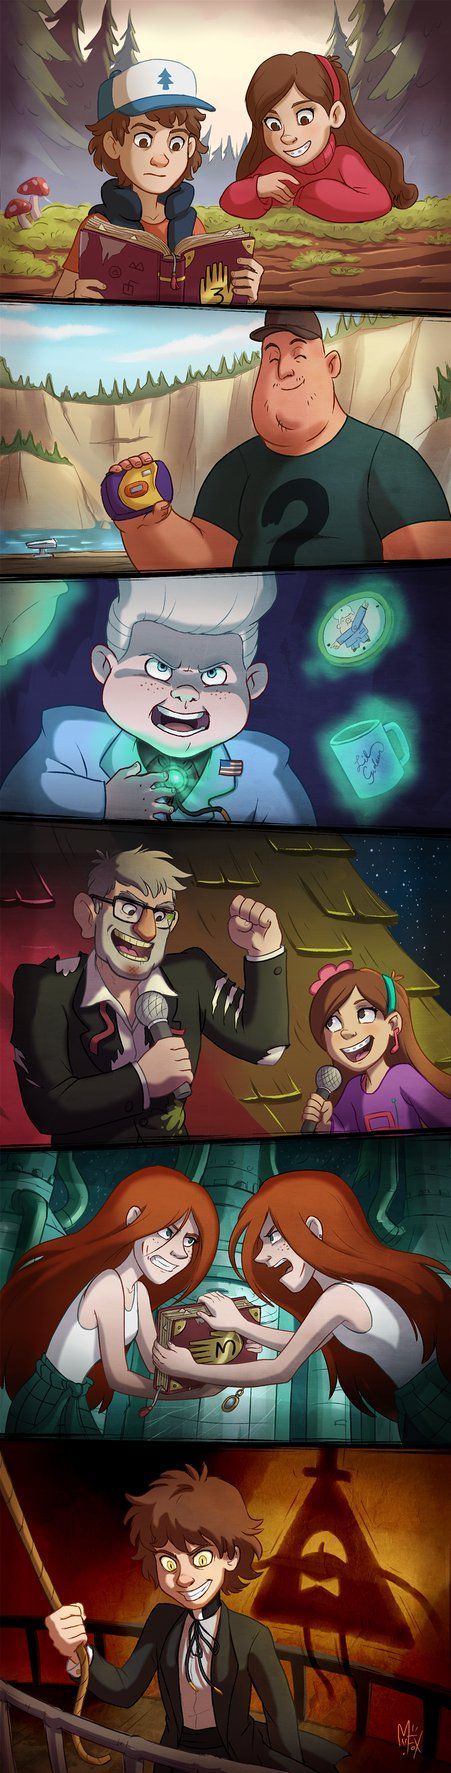 Gravity Falls! by Mistrel-Fox on deviantART I This is actually really good.